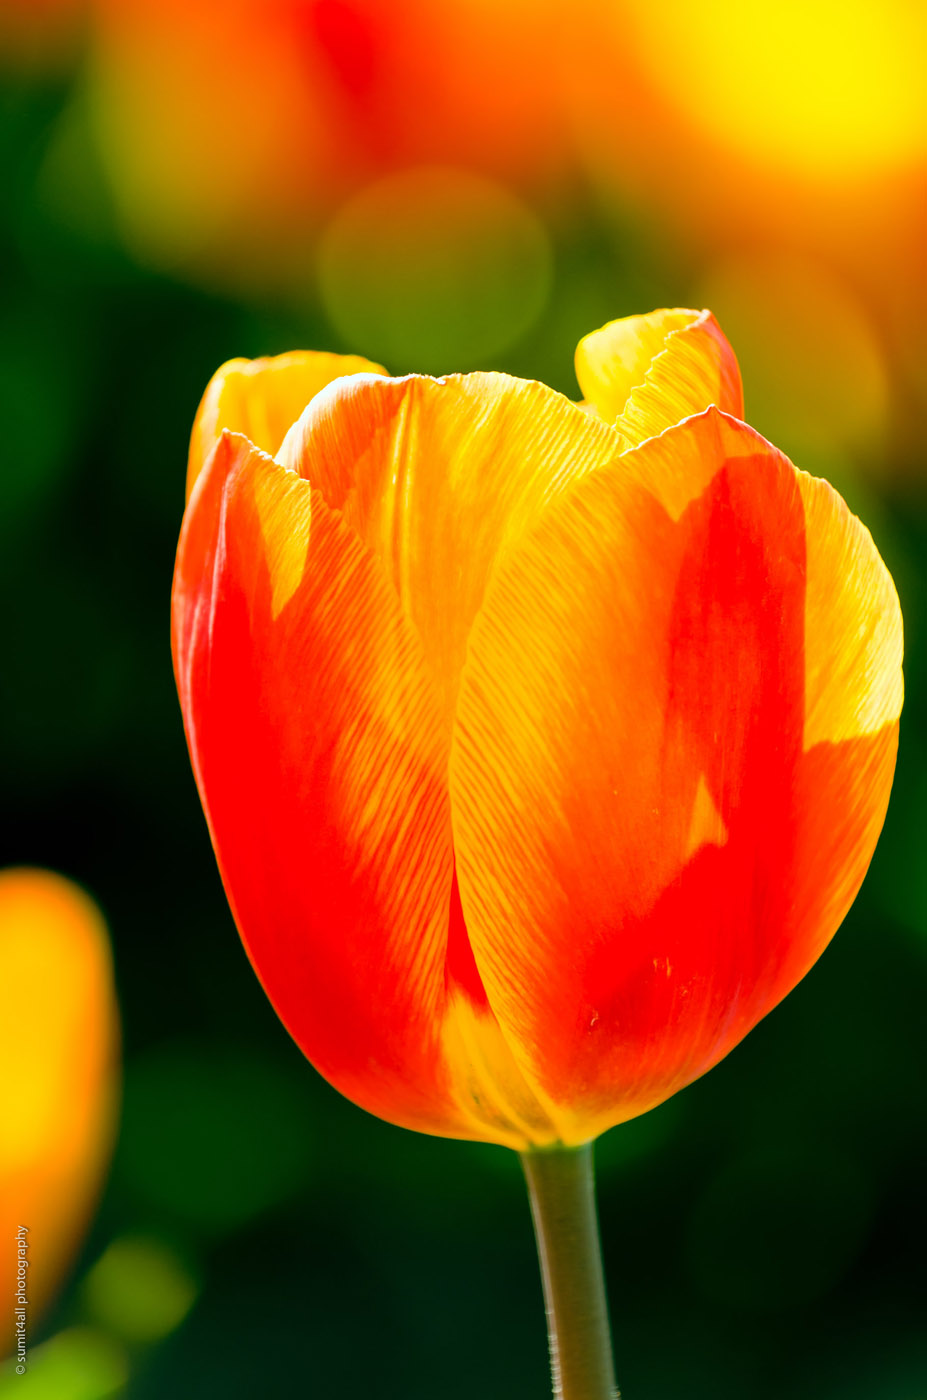 A Red and Yellow Tulip in a Tulip Field